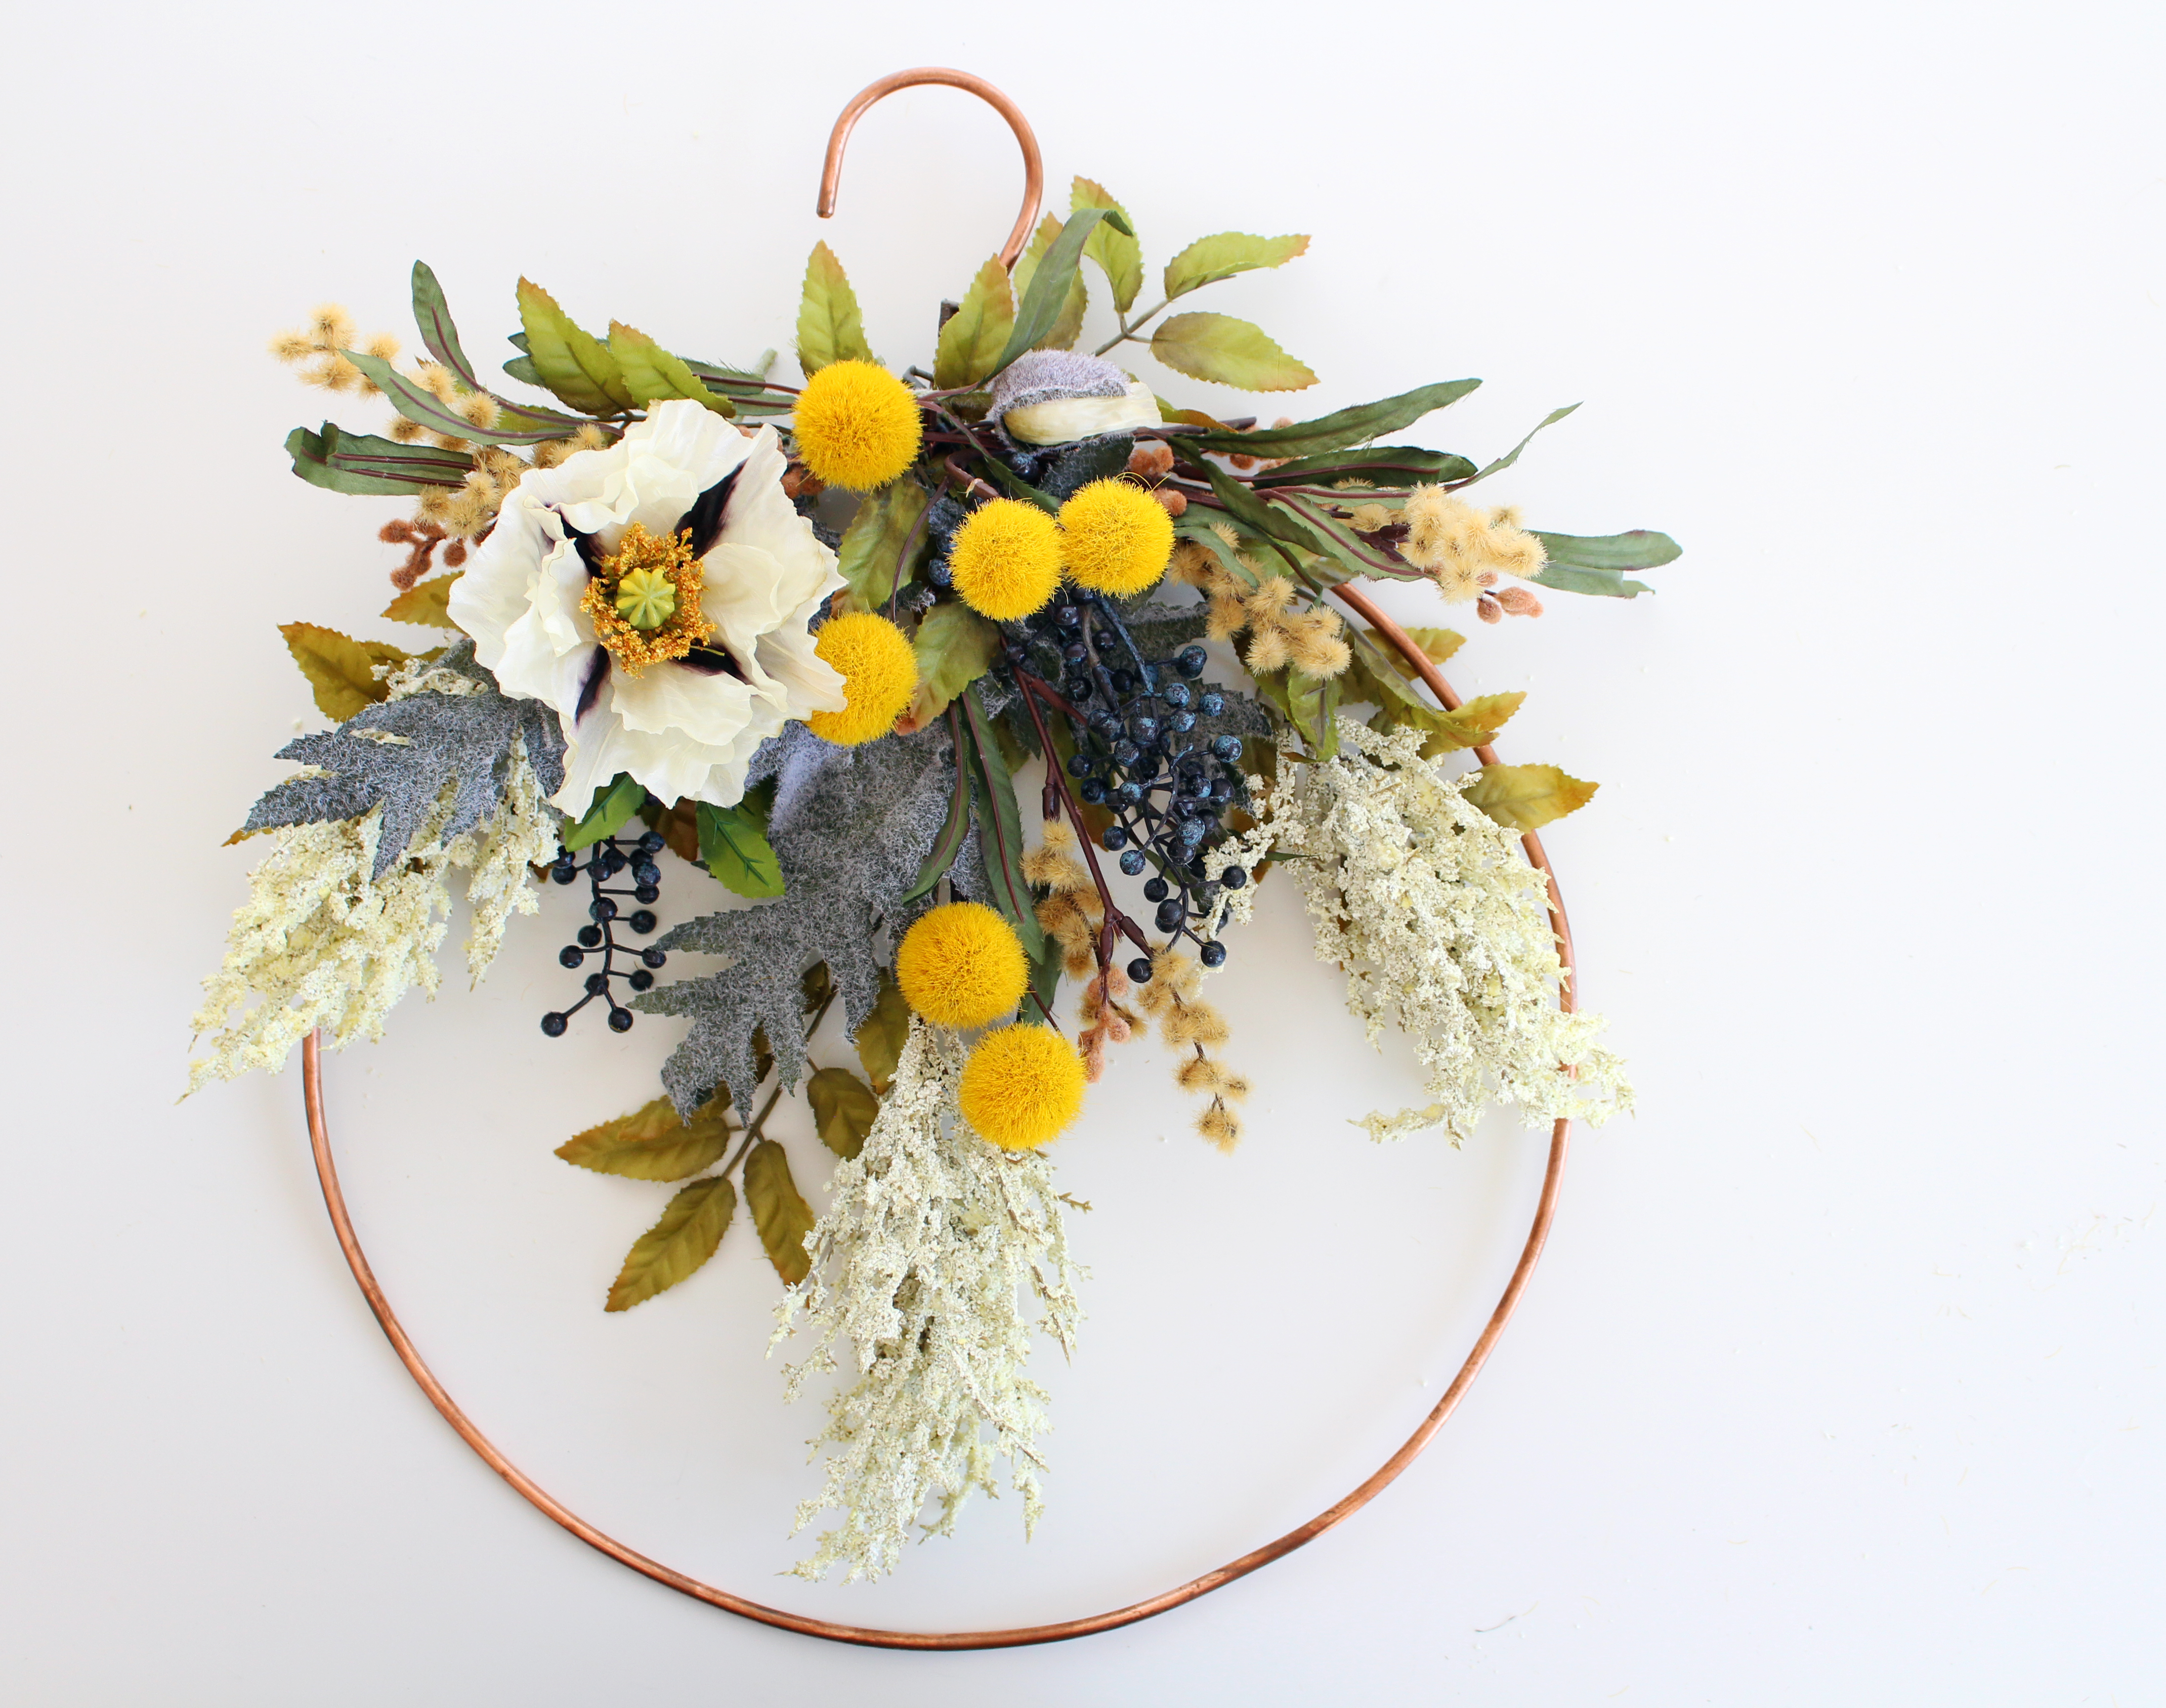 Make this amazing Faux Floral Fall Wreath on a handmade copper frame during the next Faux Floral Skills Workshop at the Lily & Val Flagship Store